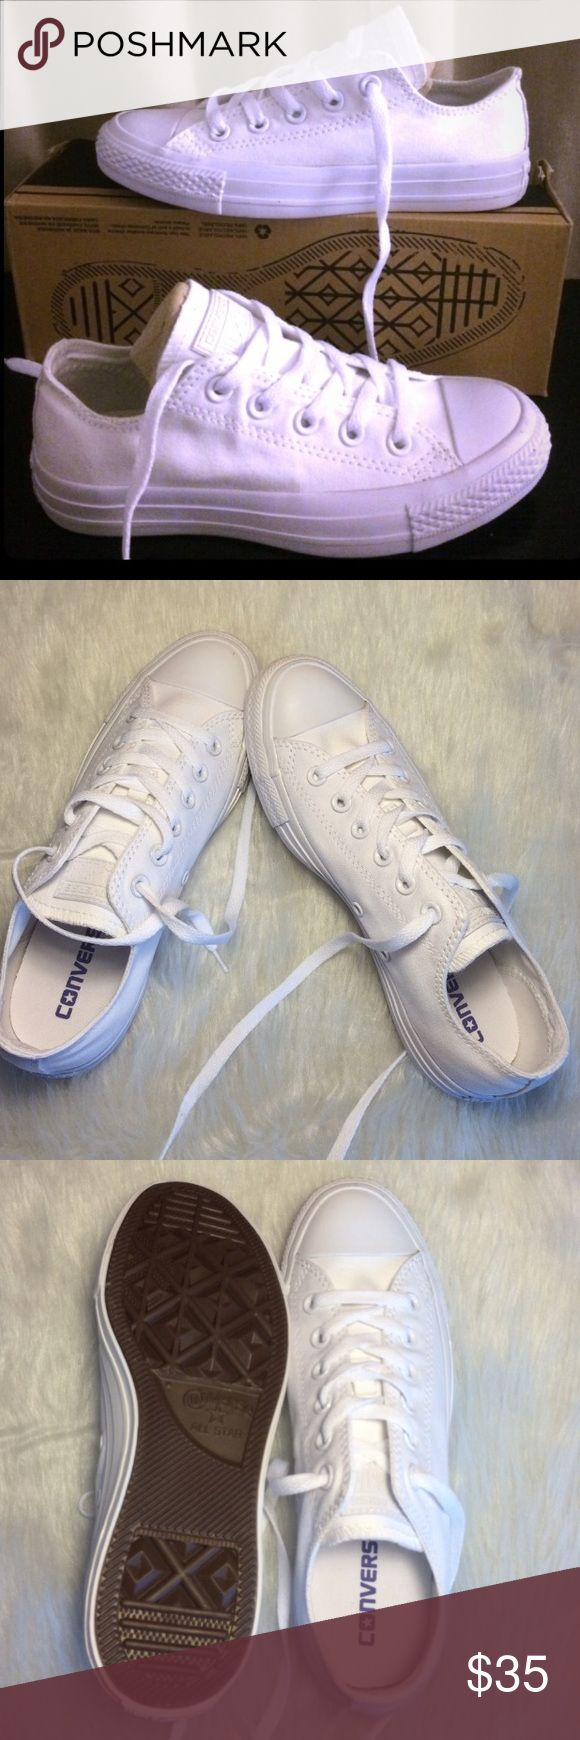 CONVERSE WOMENS ALL WHITE SIZE 8 SHOES LOW TOPS ✨ All white low top 100% authentic Womens size 8 shoes, in like new condition. Without box. ✨ PRICE IS FIRM! Converse Shoes Sneakers